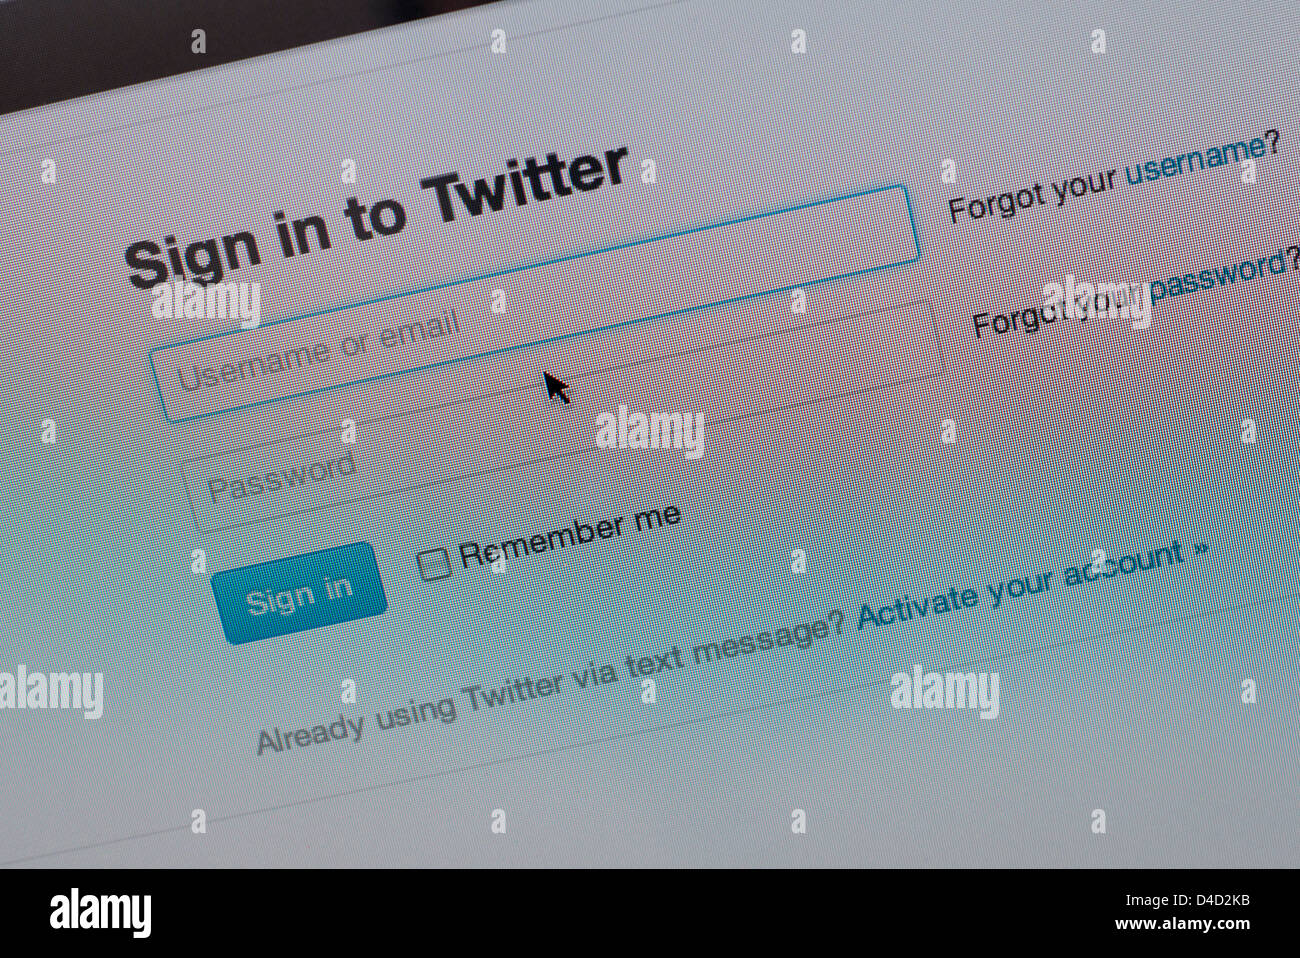 twitter web page, sign in - Stock Image